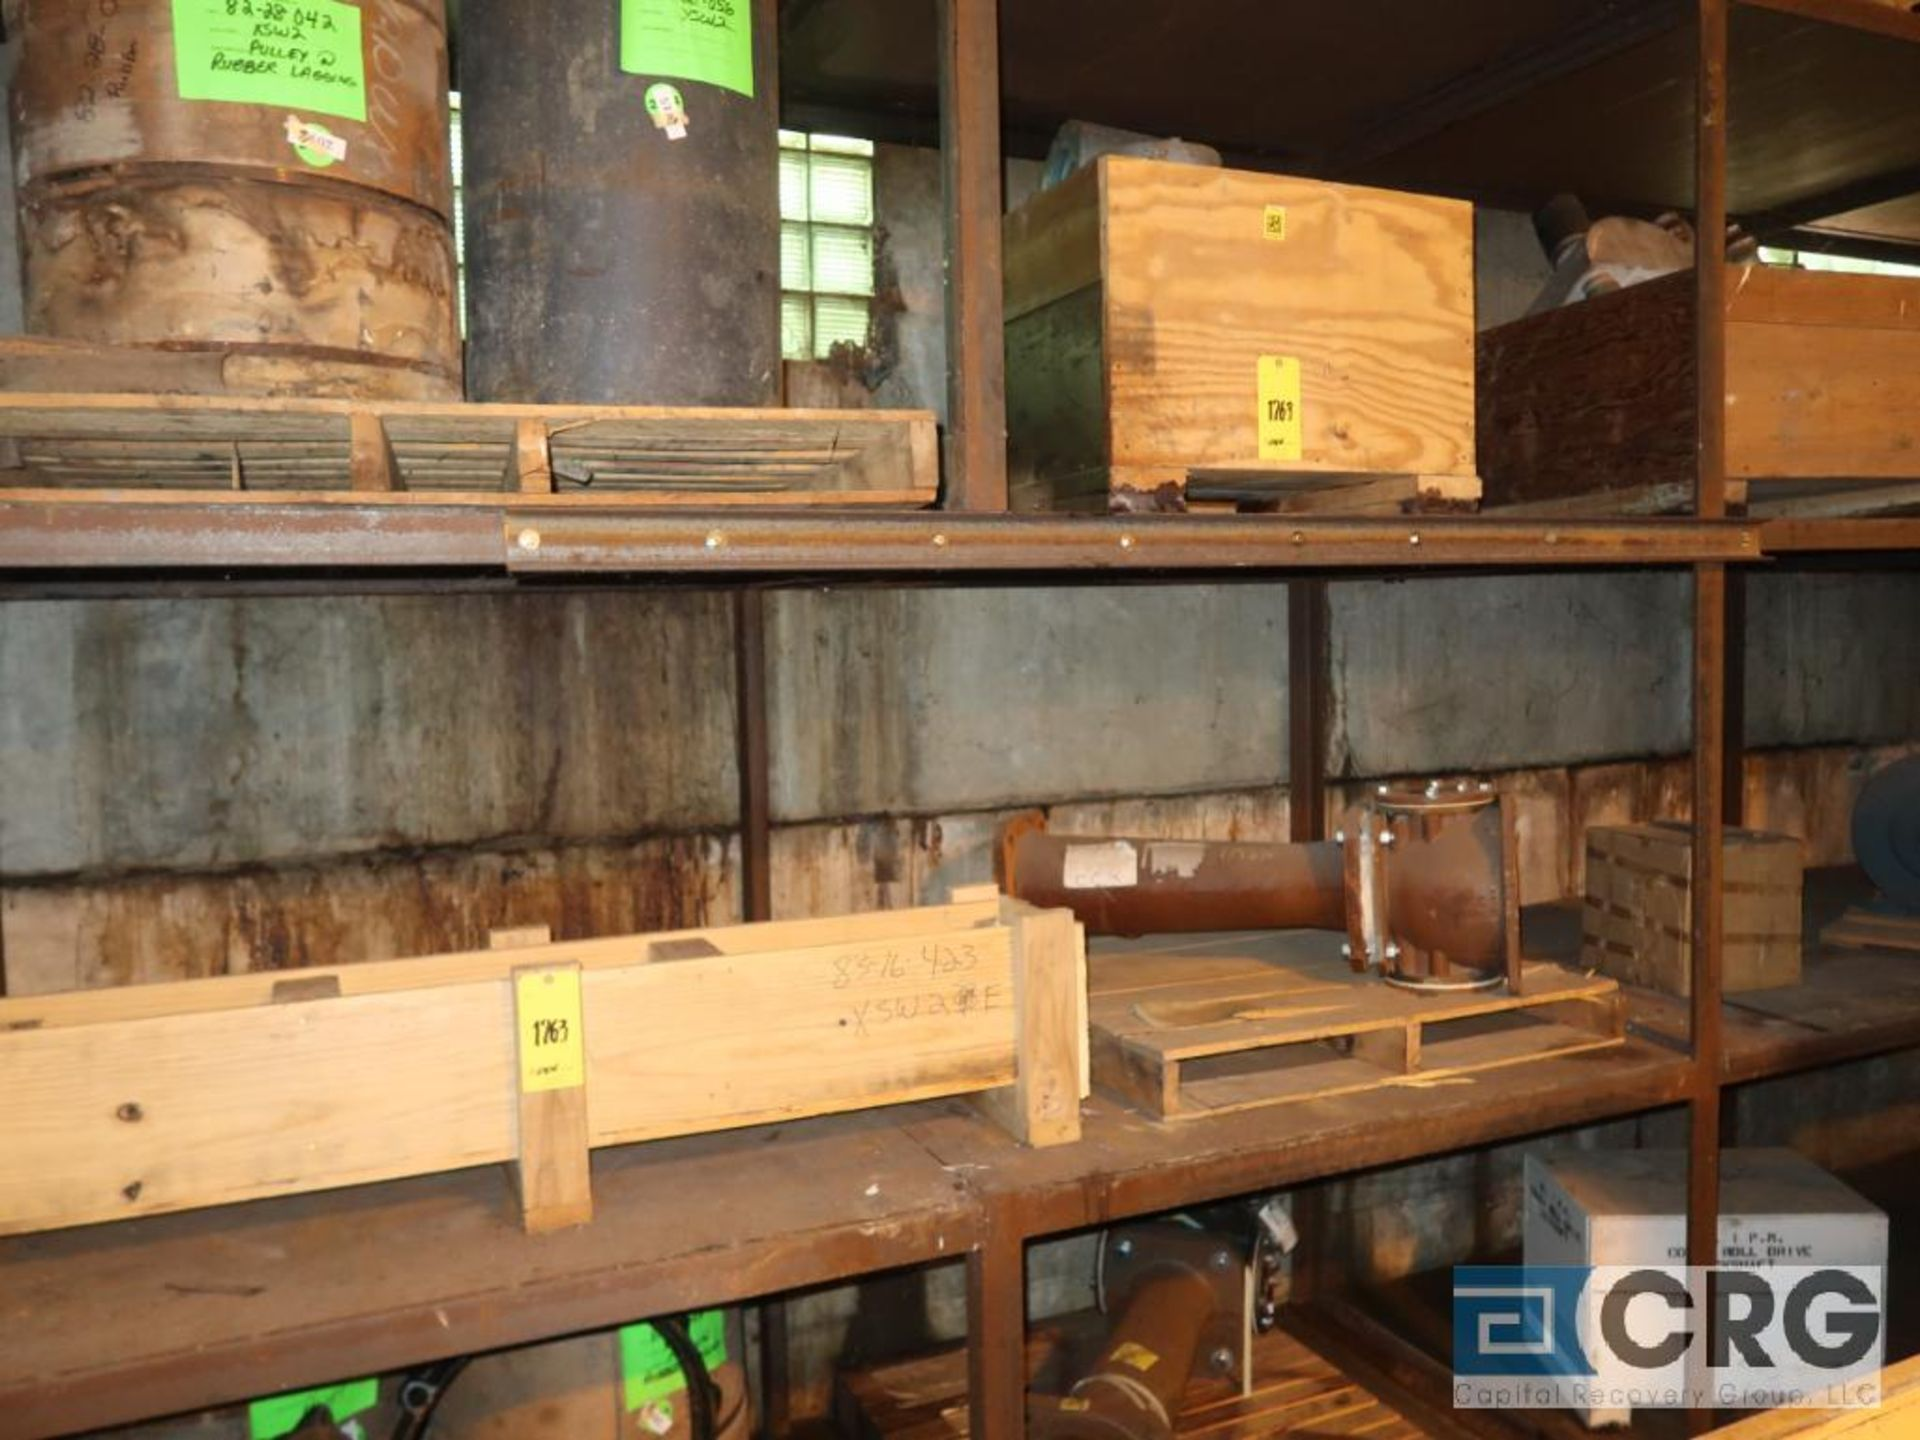 Lot of assorted parts including expansion joint, valves, fan blade, and rotors (Next Bay Cage Area) - Image 13 of 15